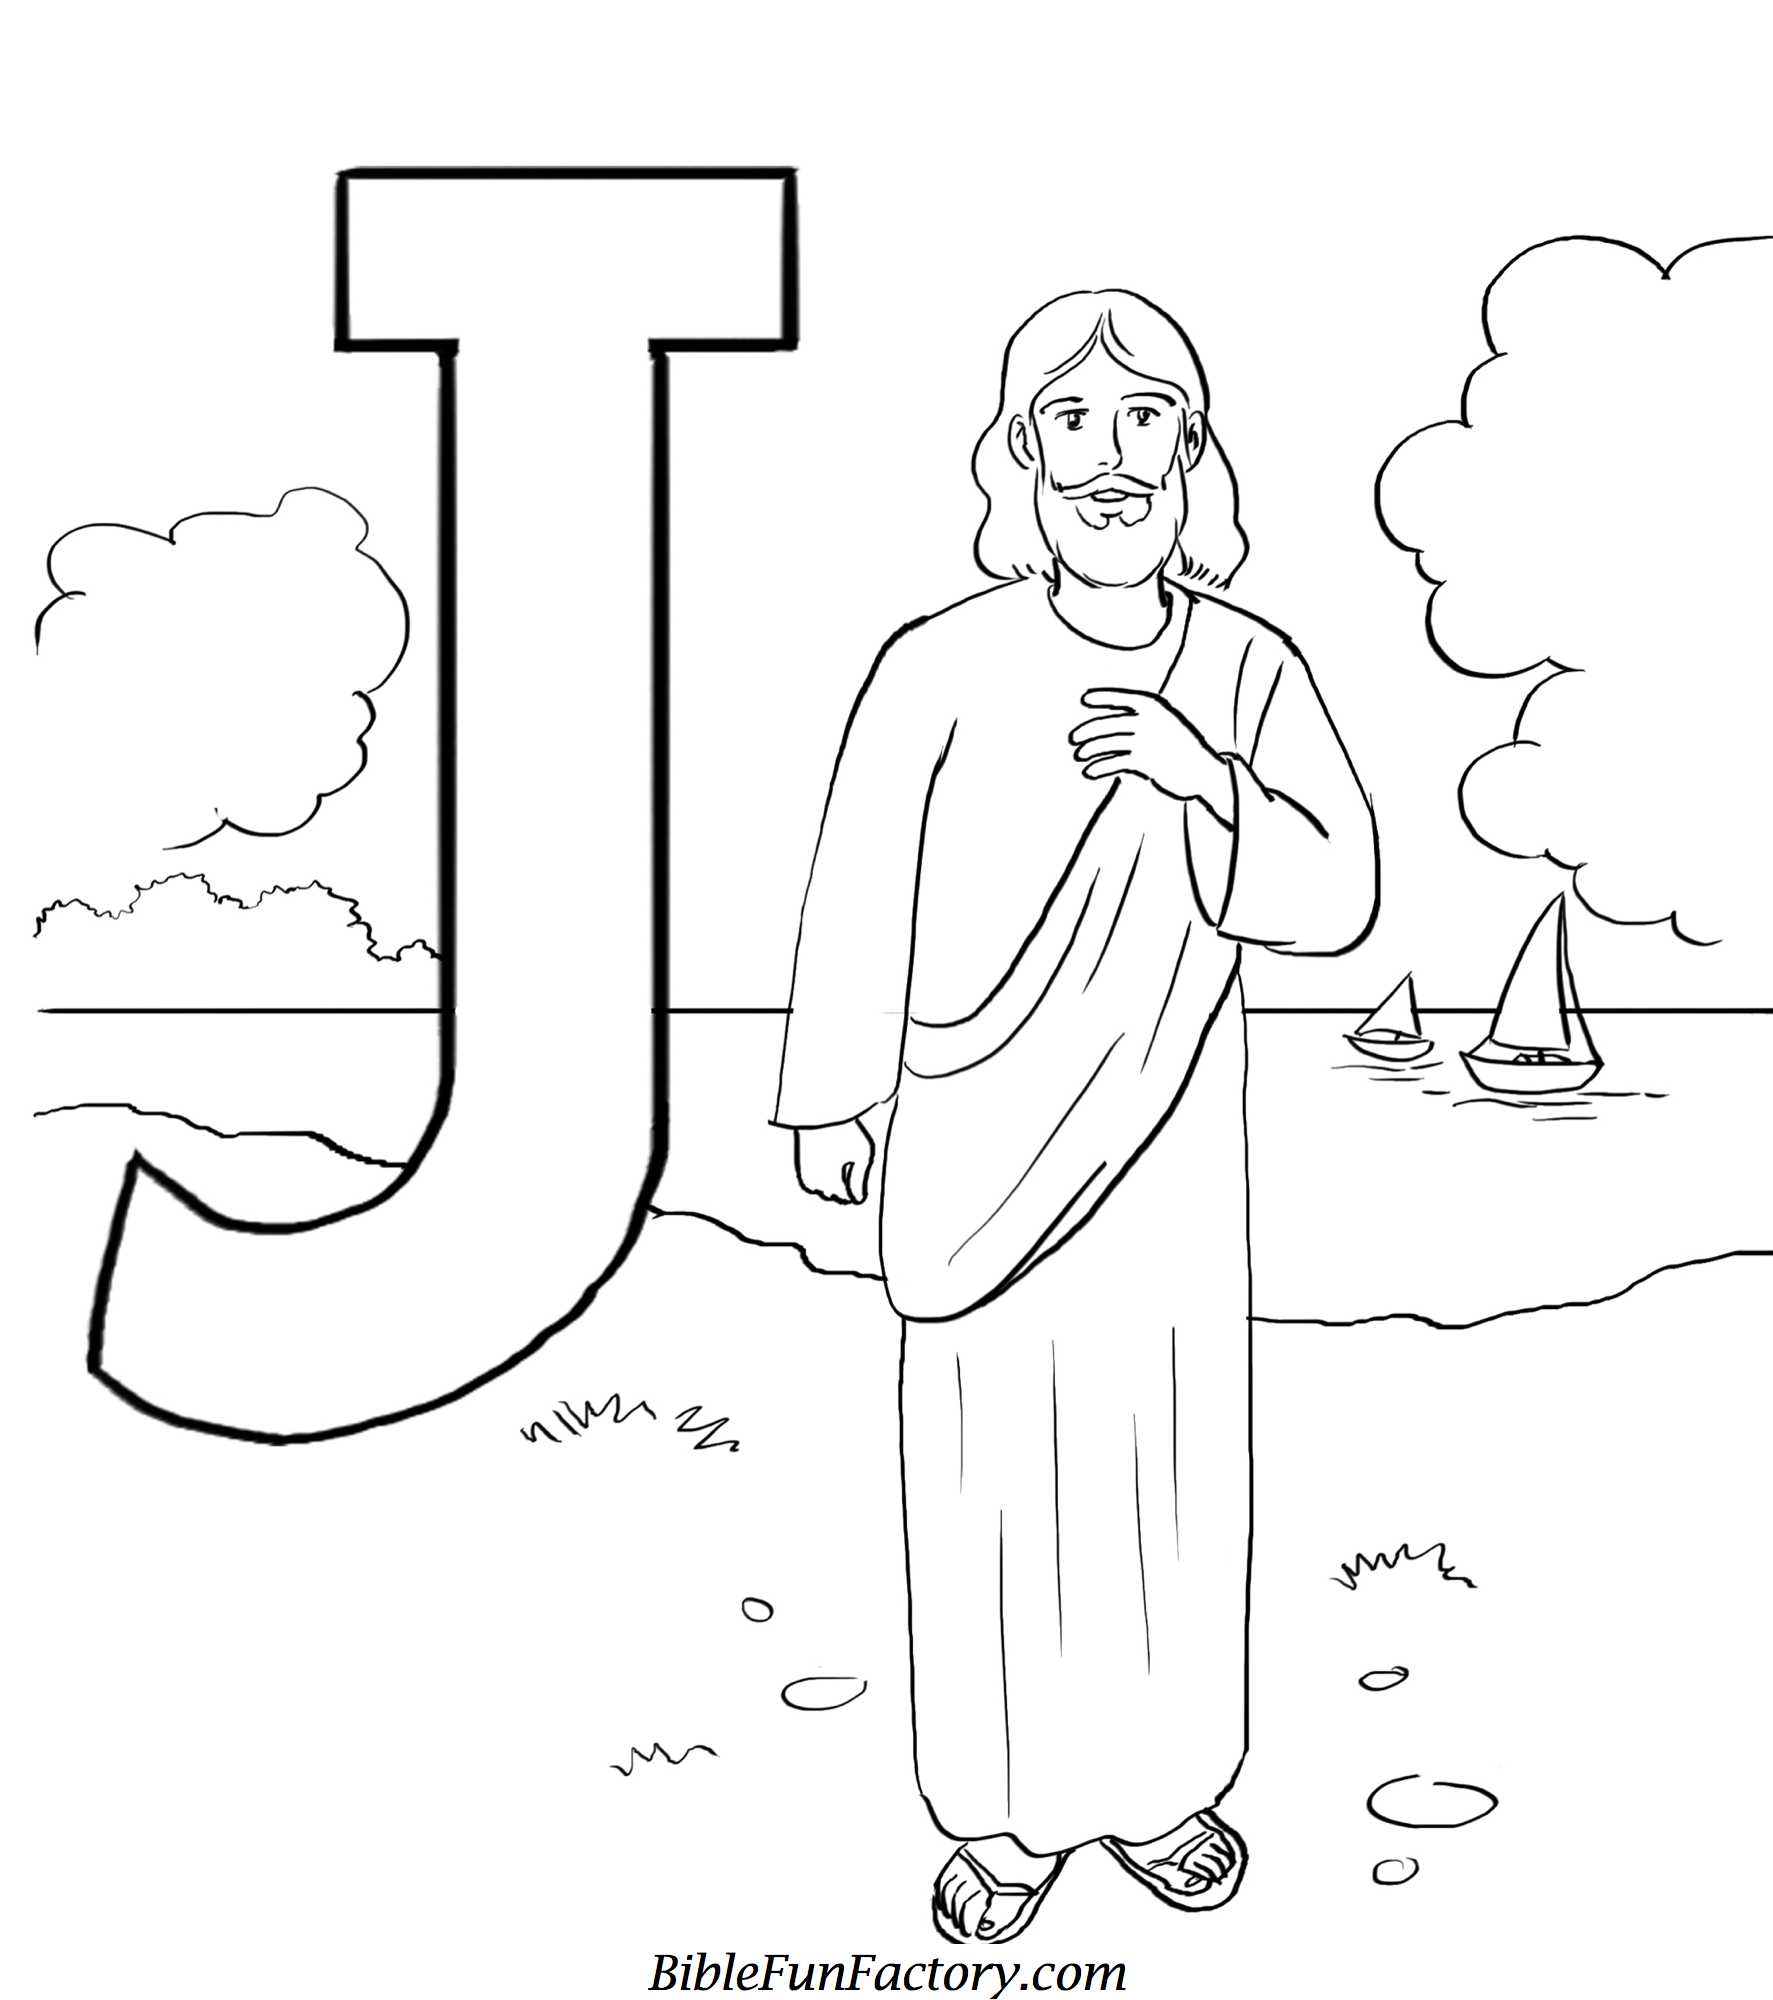 jesus coloring page 20 jesus coloring pages for kids printable treatscom jesus page coloring